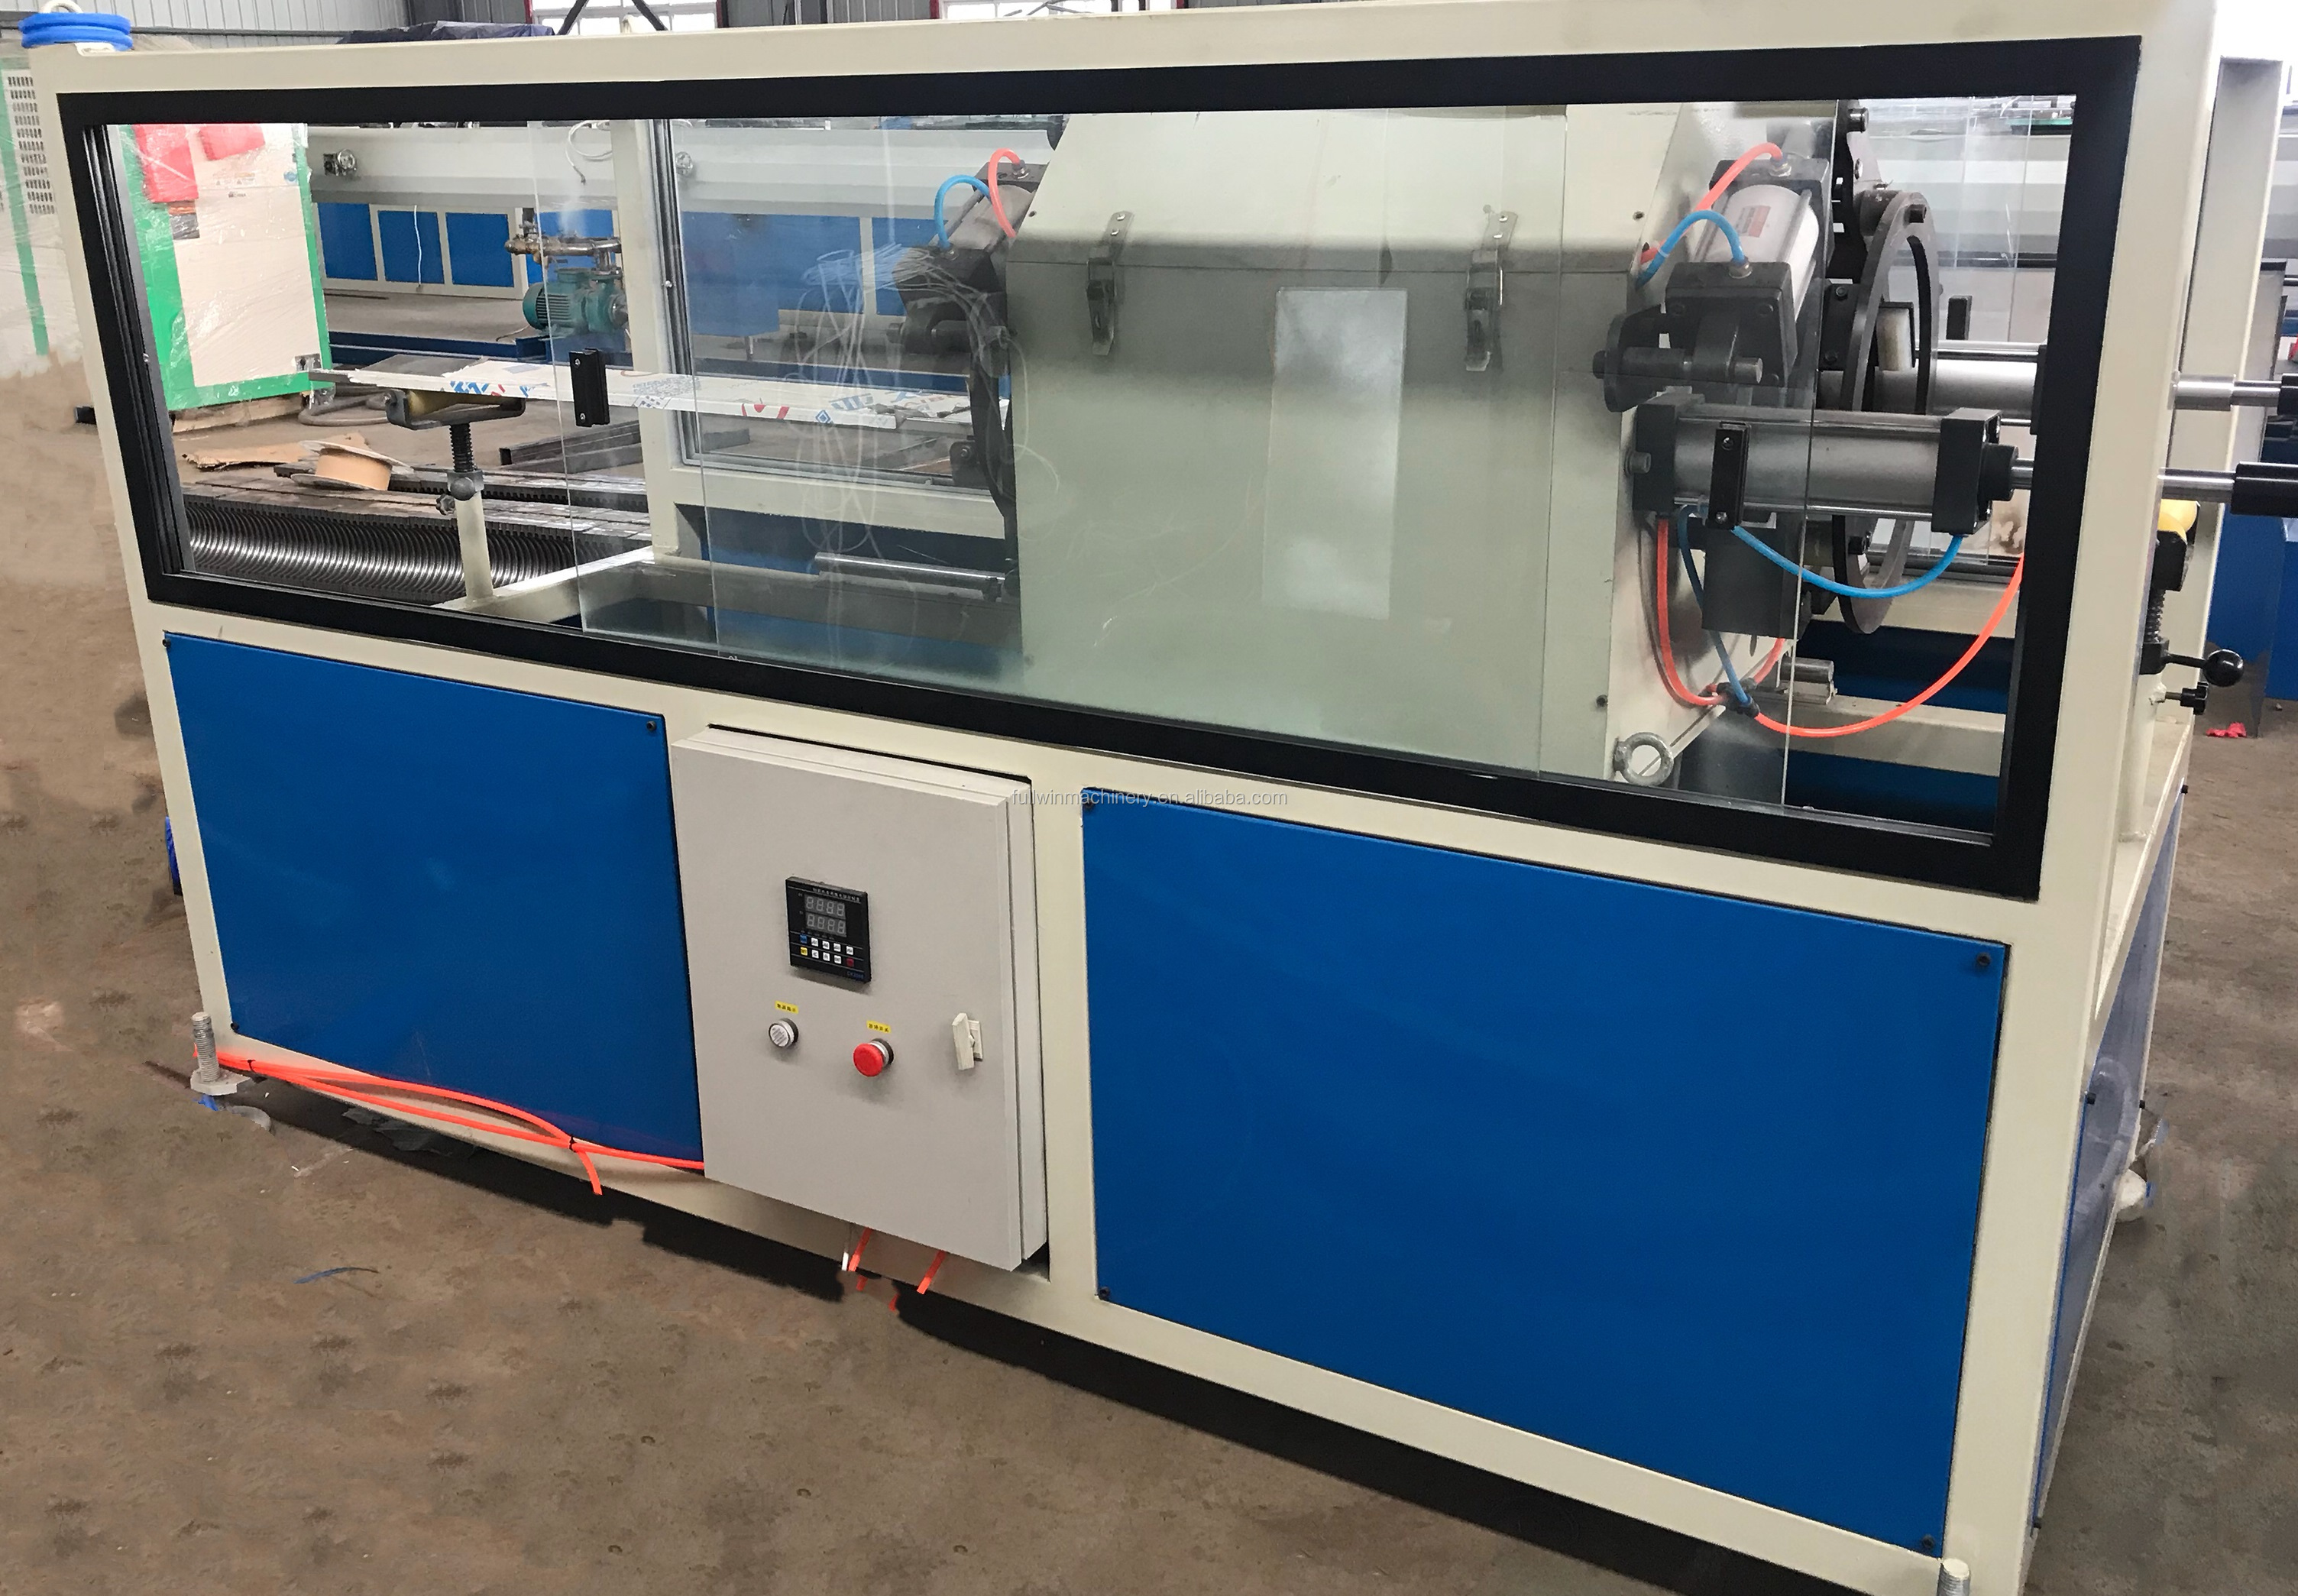 HDPE/PP  Double Wall Corrugated Pipe Extrusion Line  DWC Machine from Qingdao fullwin